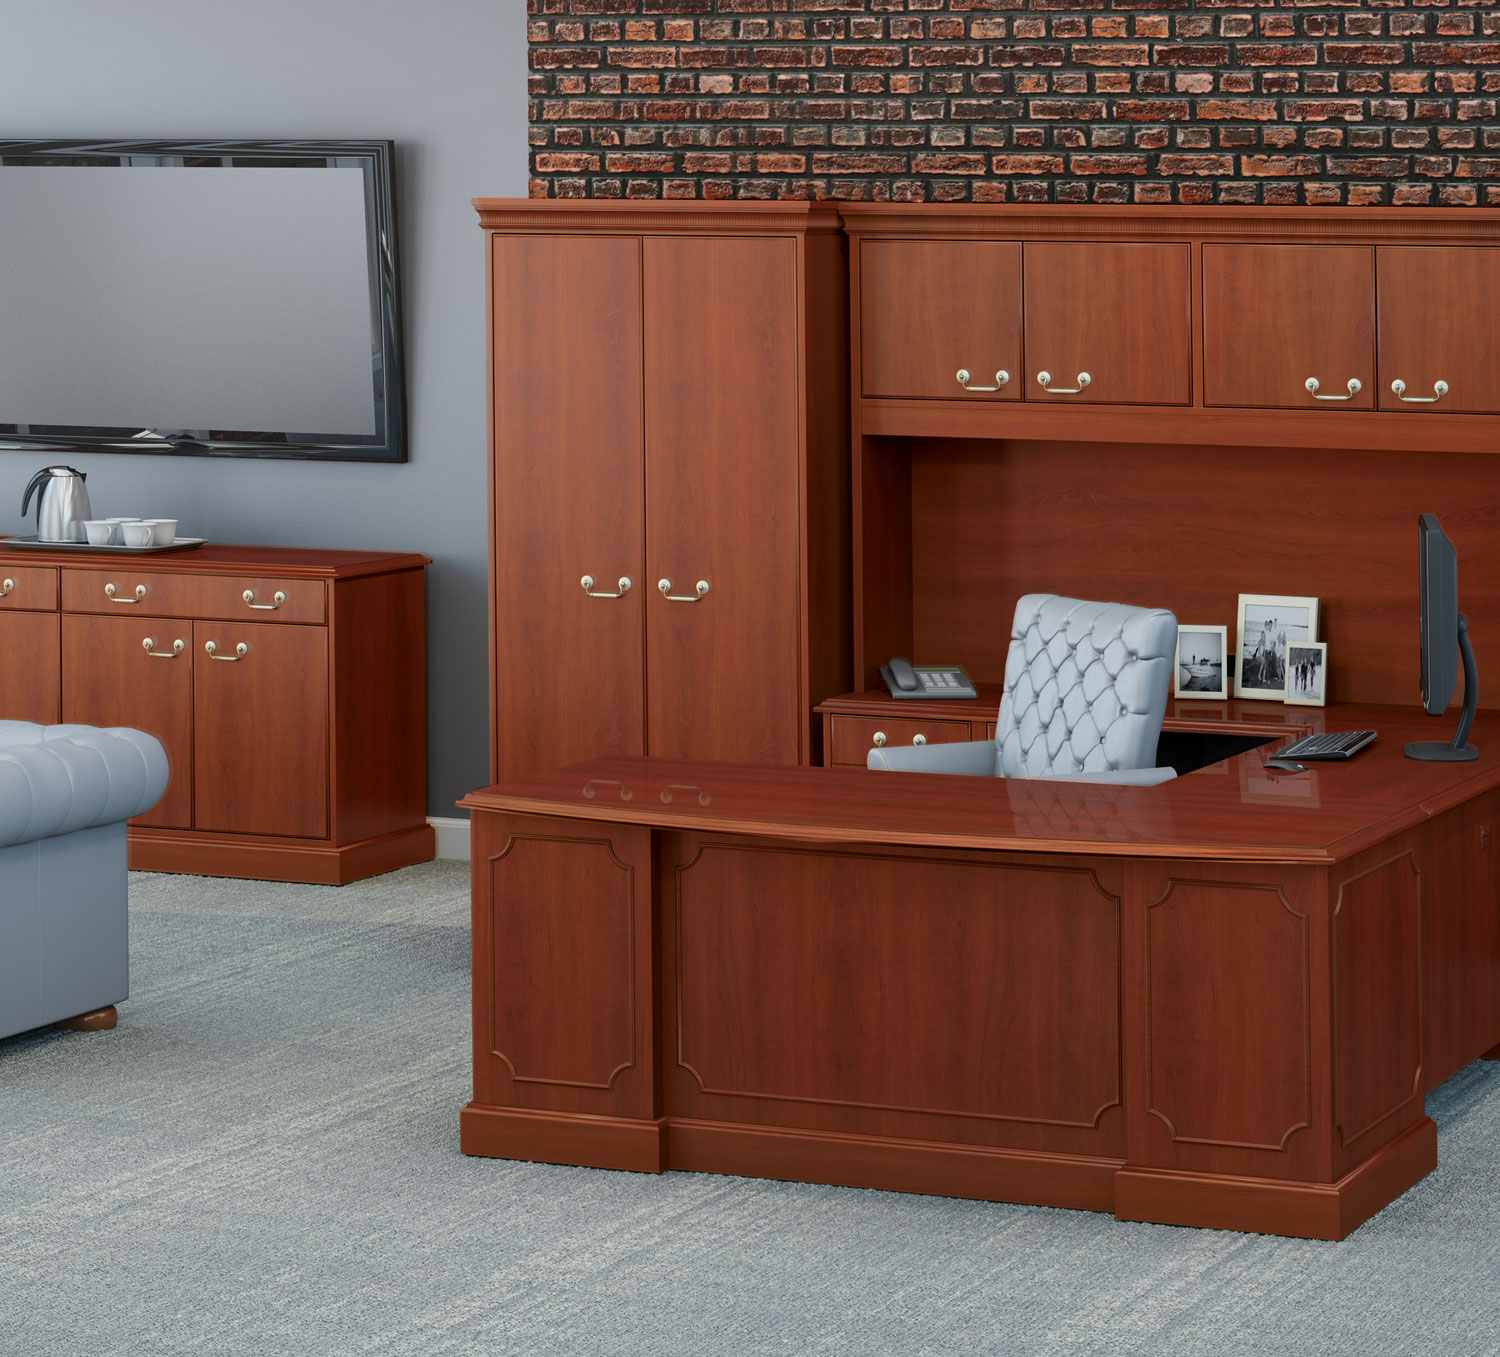 Bedford Traditional Casegoods From HPFi   High Point Furniture Industries